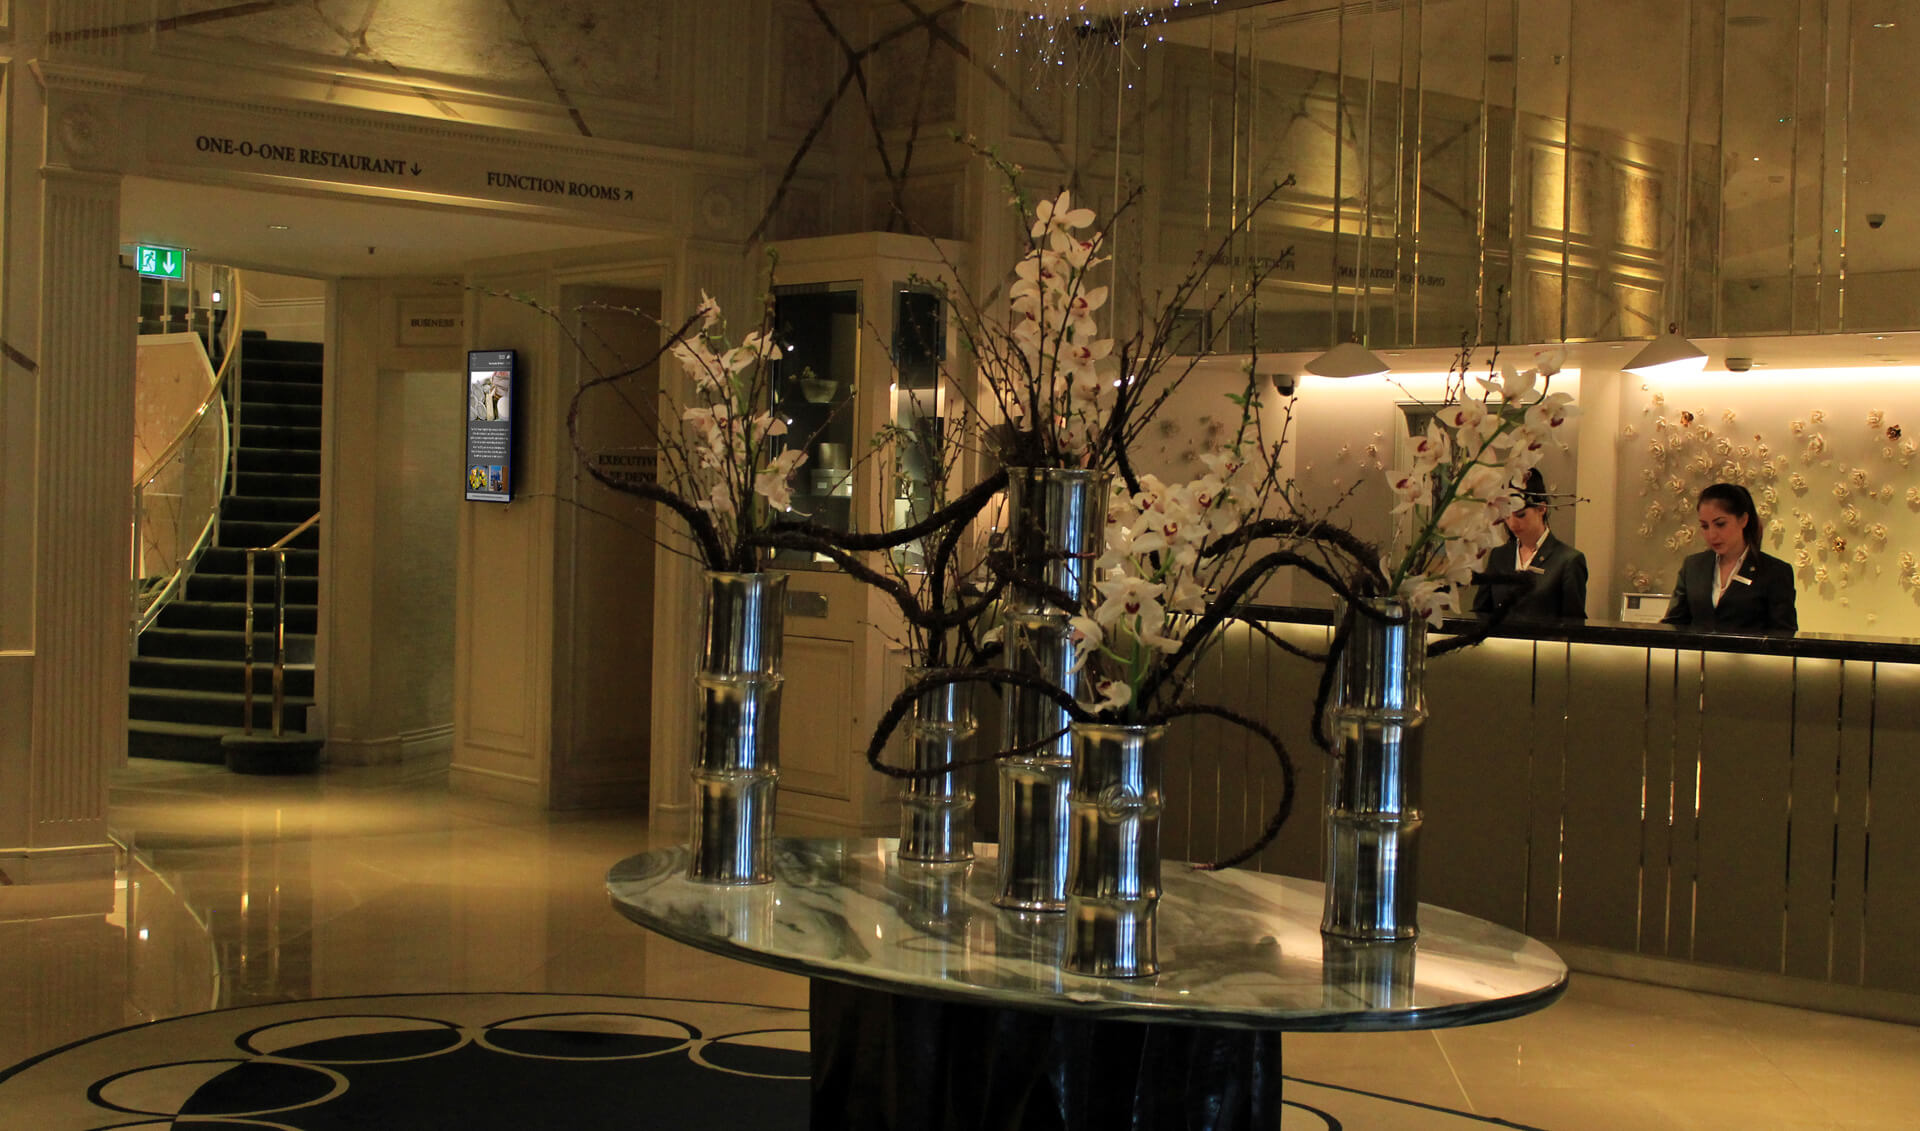 Eclipse Digital Media Digital Signage Project The Park Hotel Knightsbridge lobby